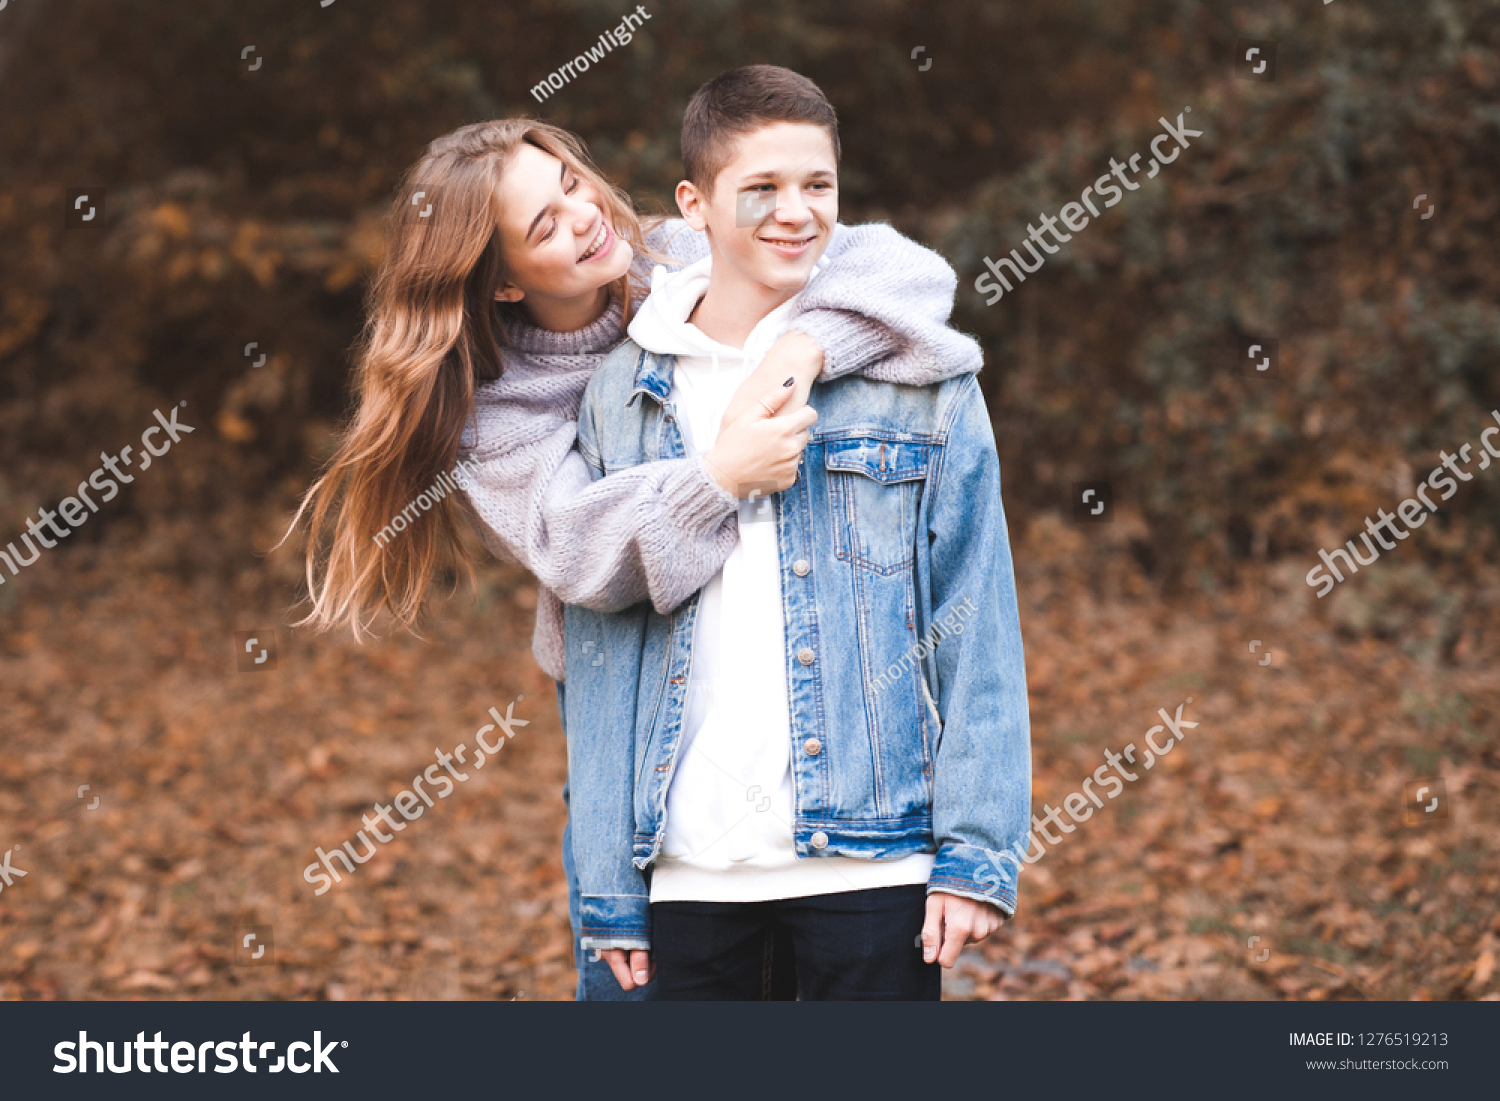 Happy love teen couple 16-17 year old having fun outdoors. Wearing stylish  denim